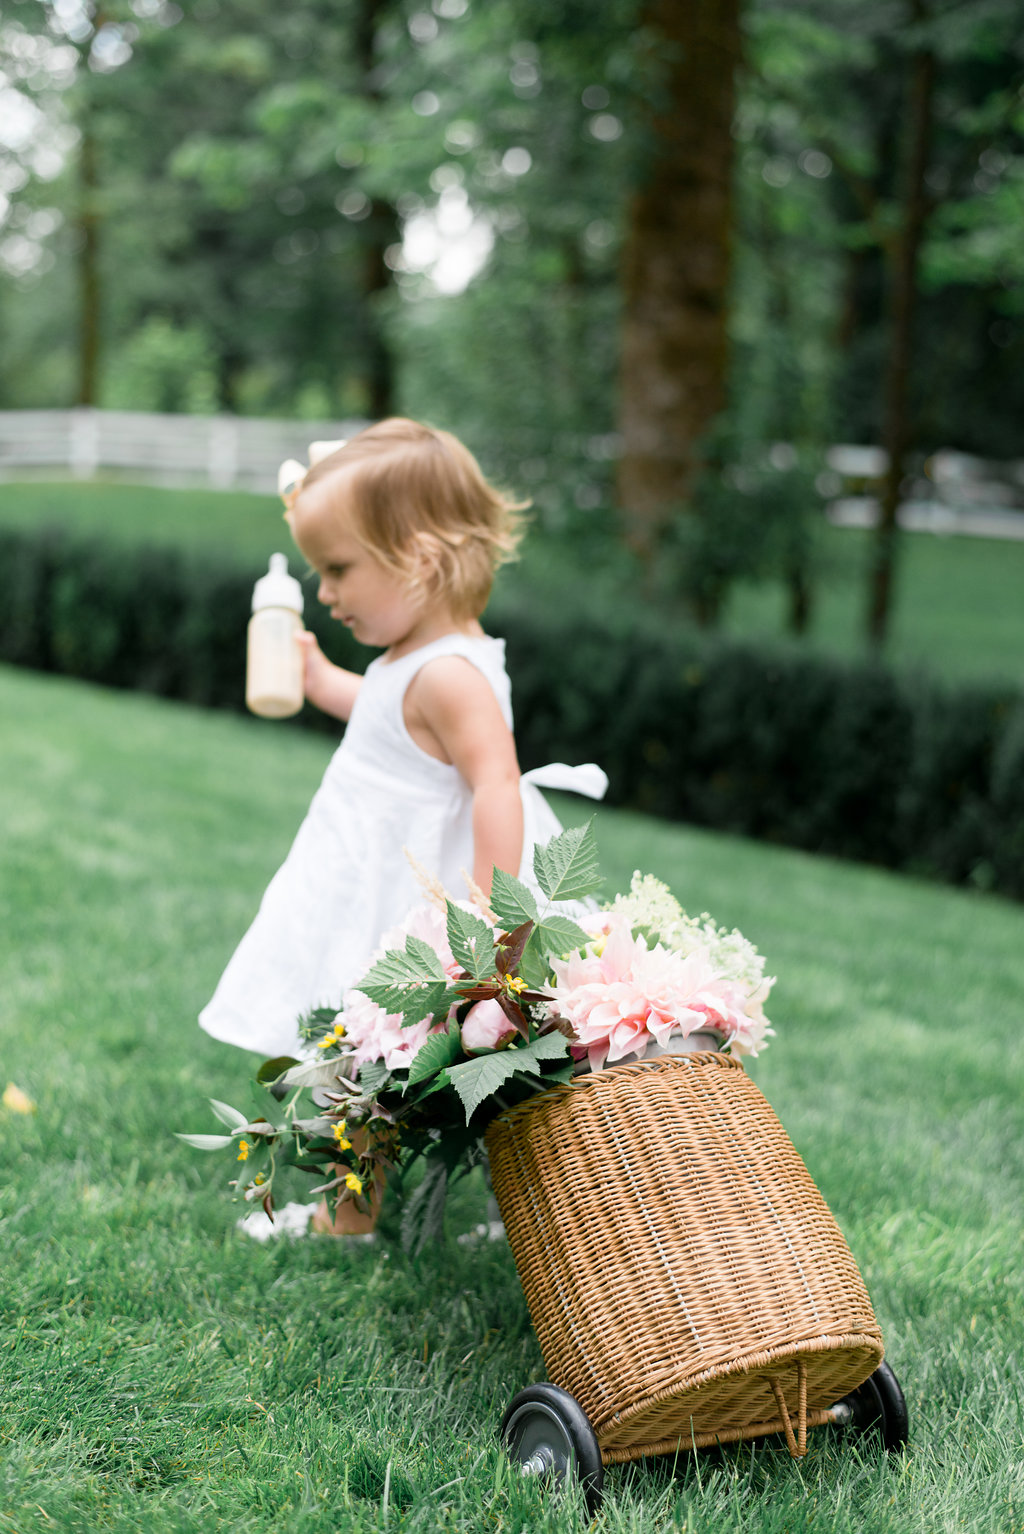 Lillya pulling a woven basket with fresh flowers